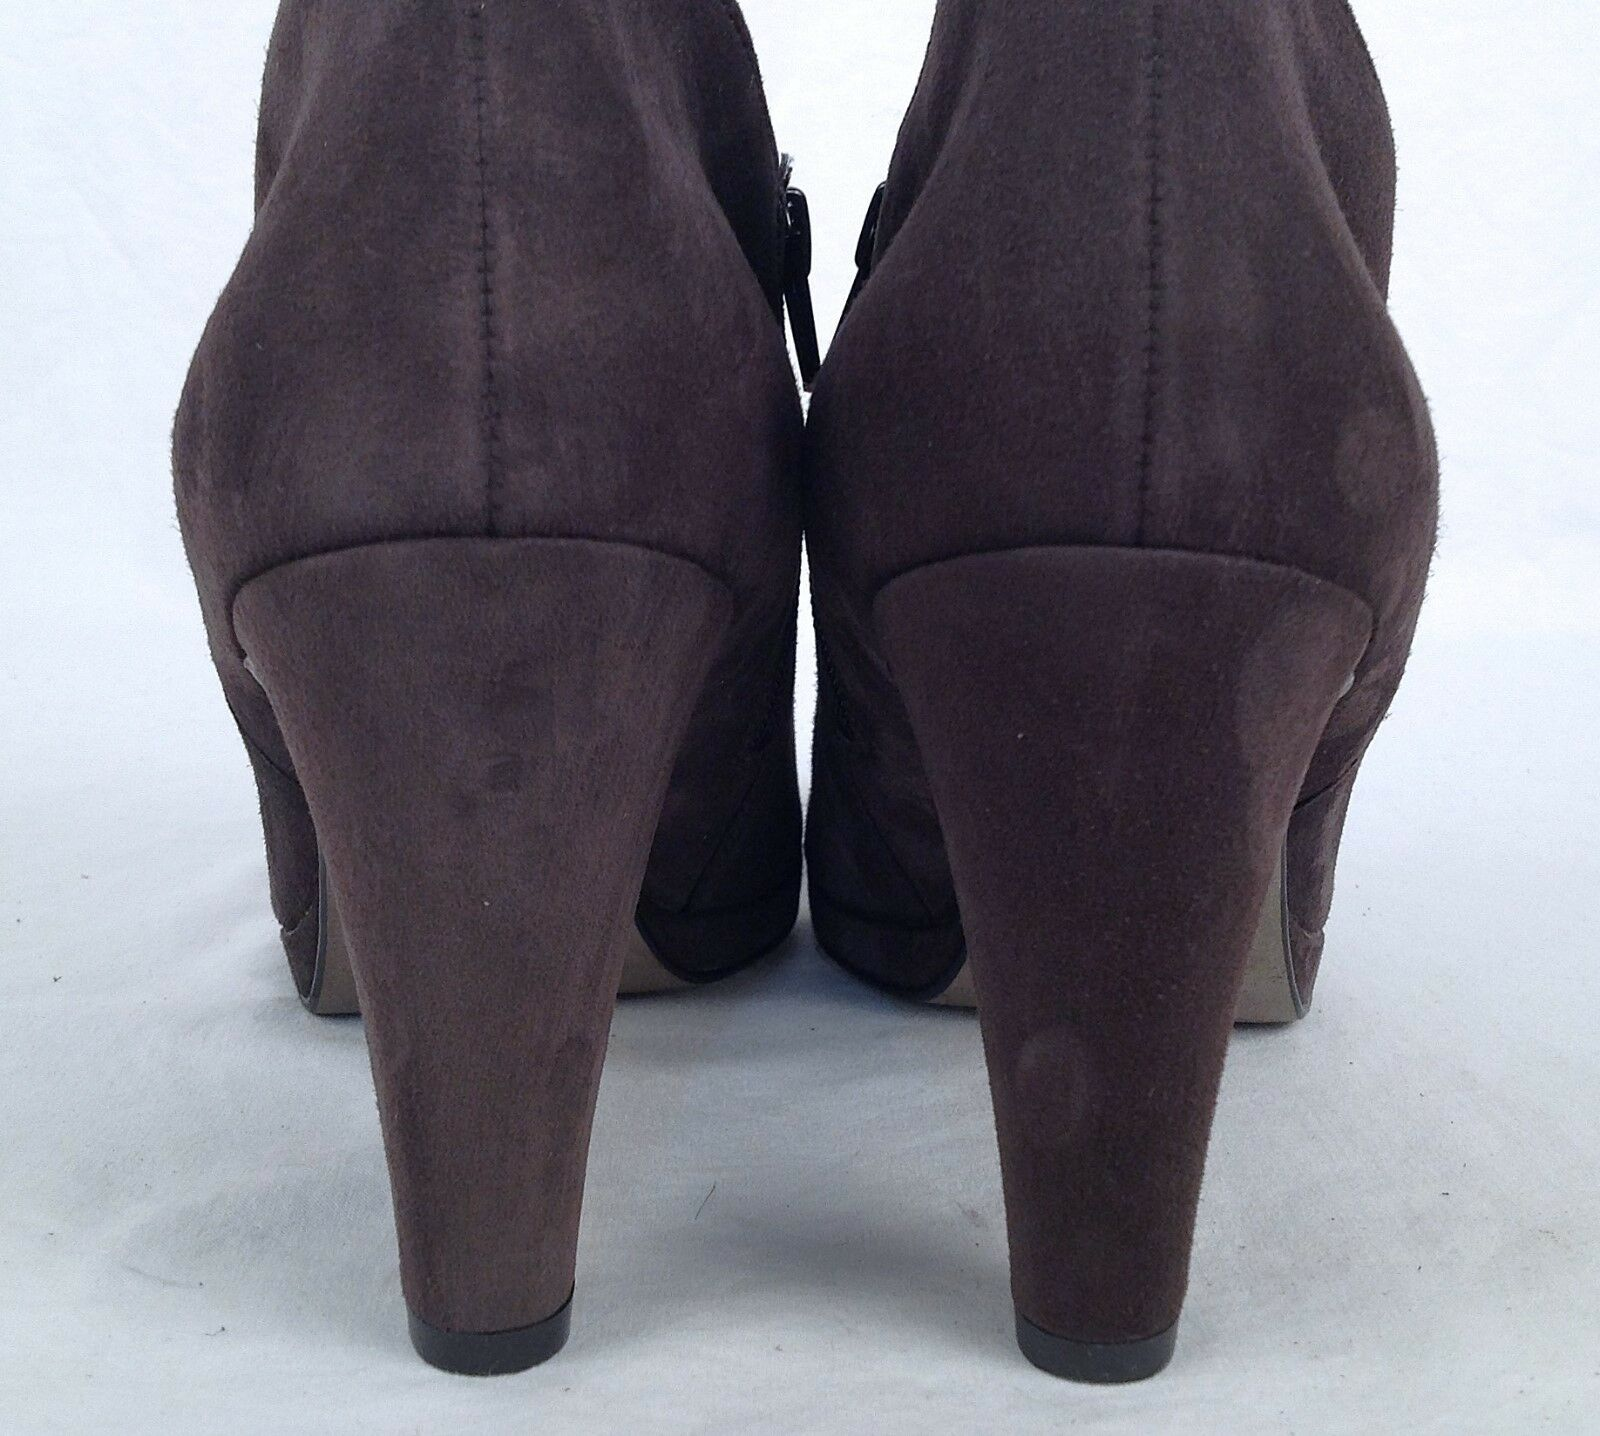 New  Paul vert 'Jazzy' 'Jazzy' 'Jazzy' démarrageie- gris Suede- Taille 10 US  7.5 AU  380- (P4) e04a8b